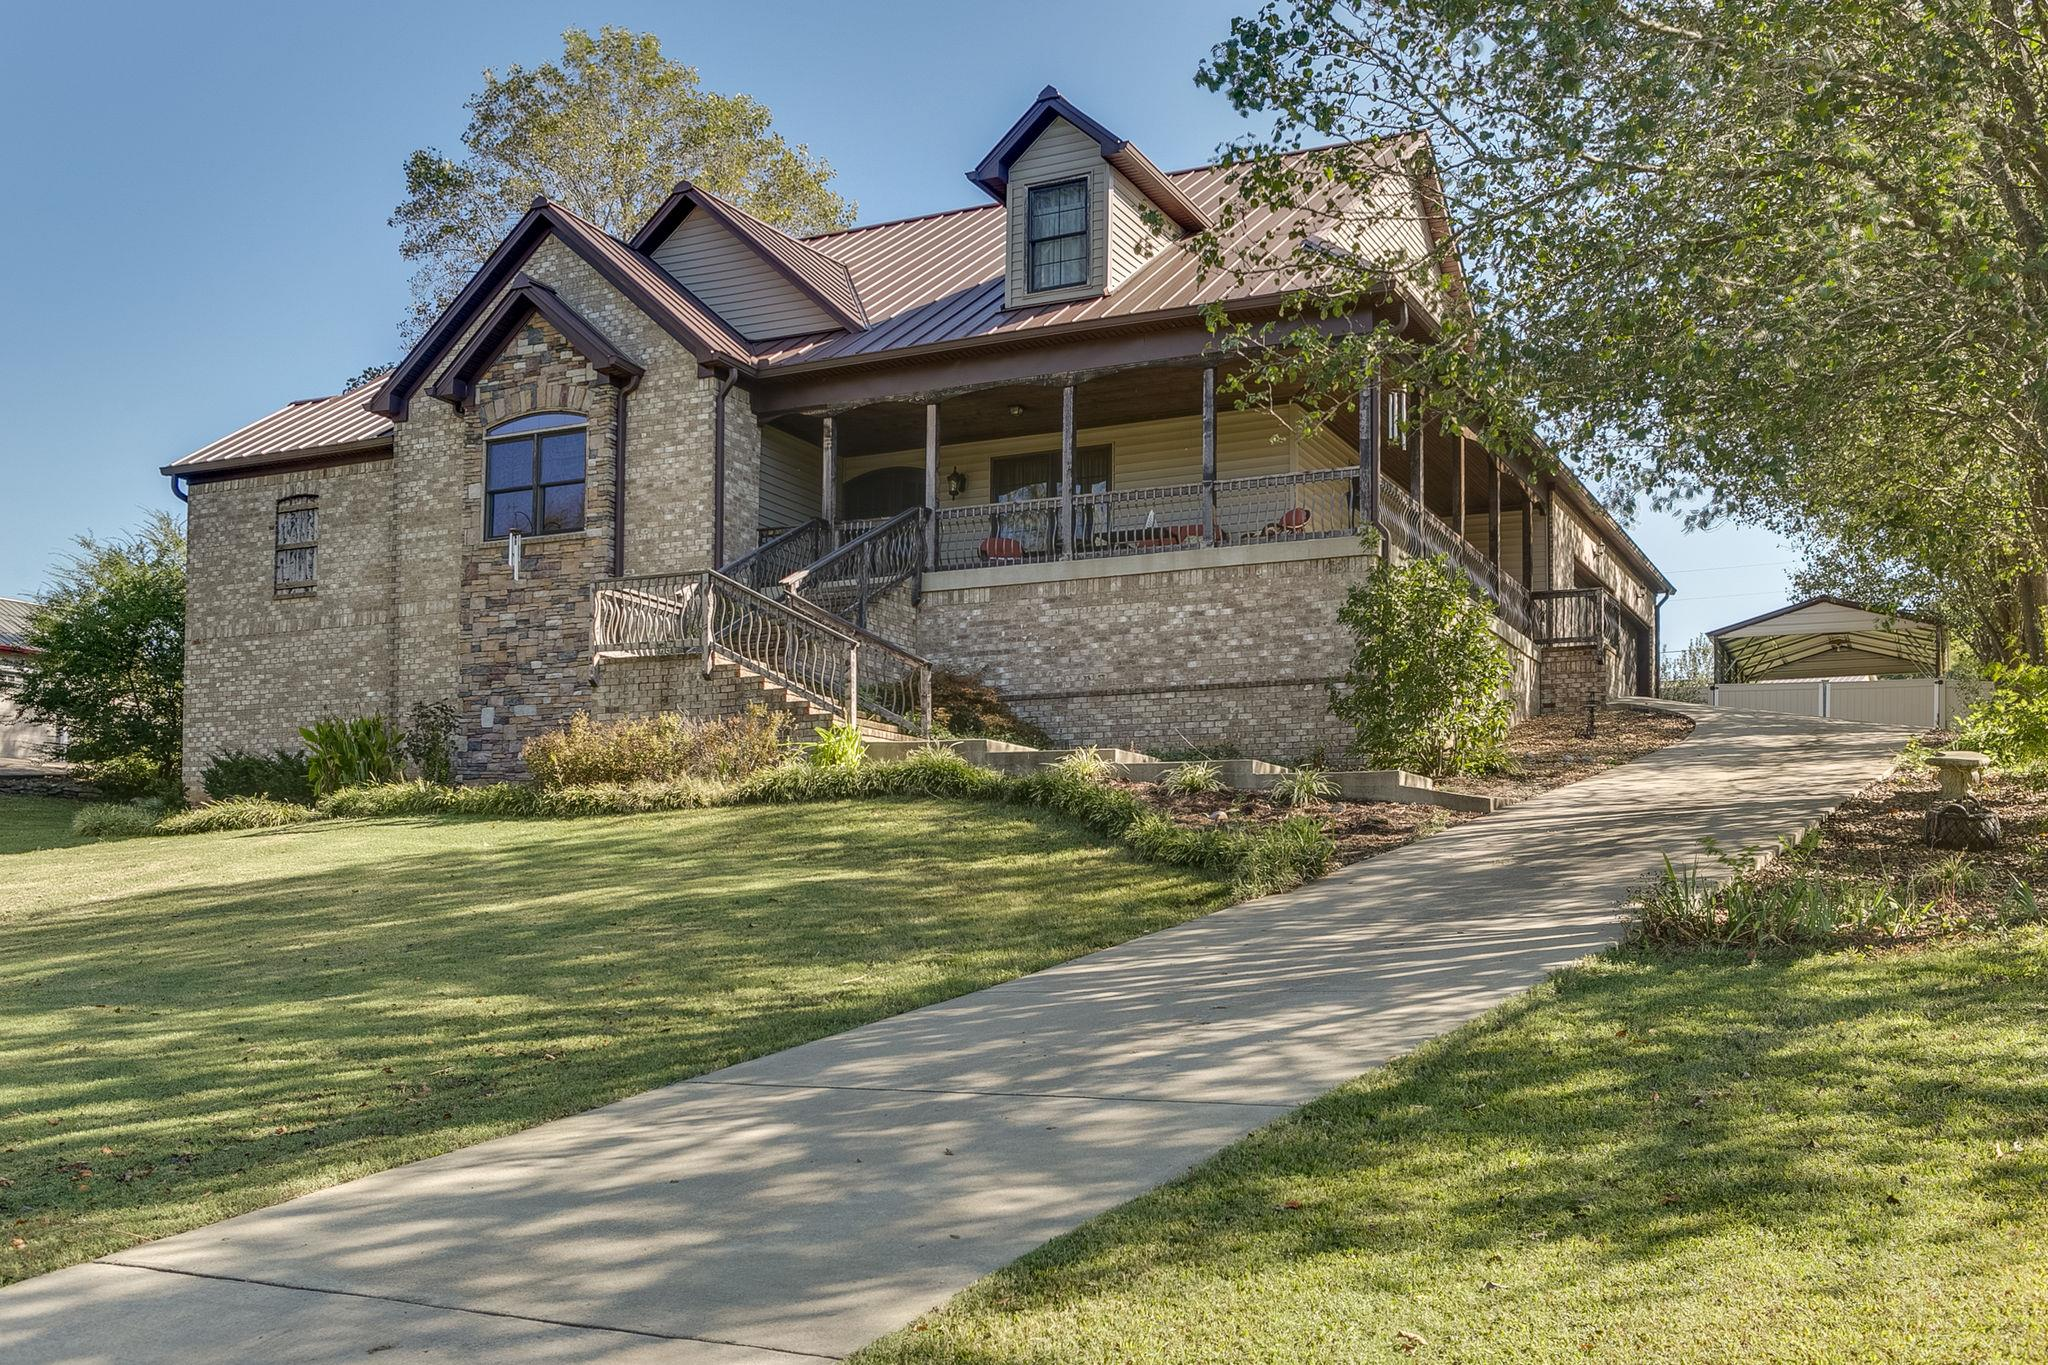 1929 Rock Springs Rd, Columbia, Tennessee